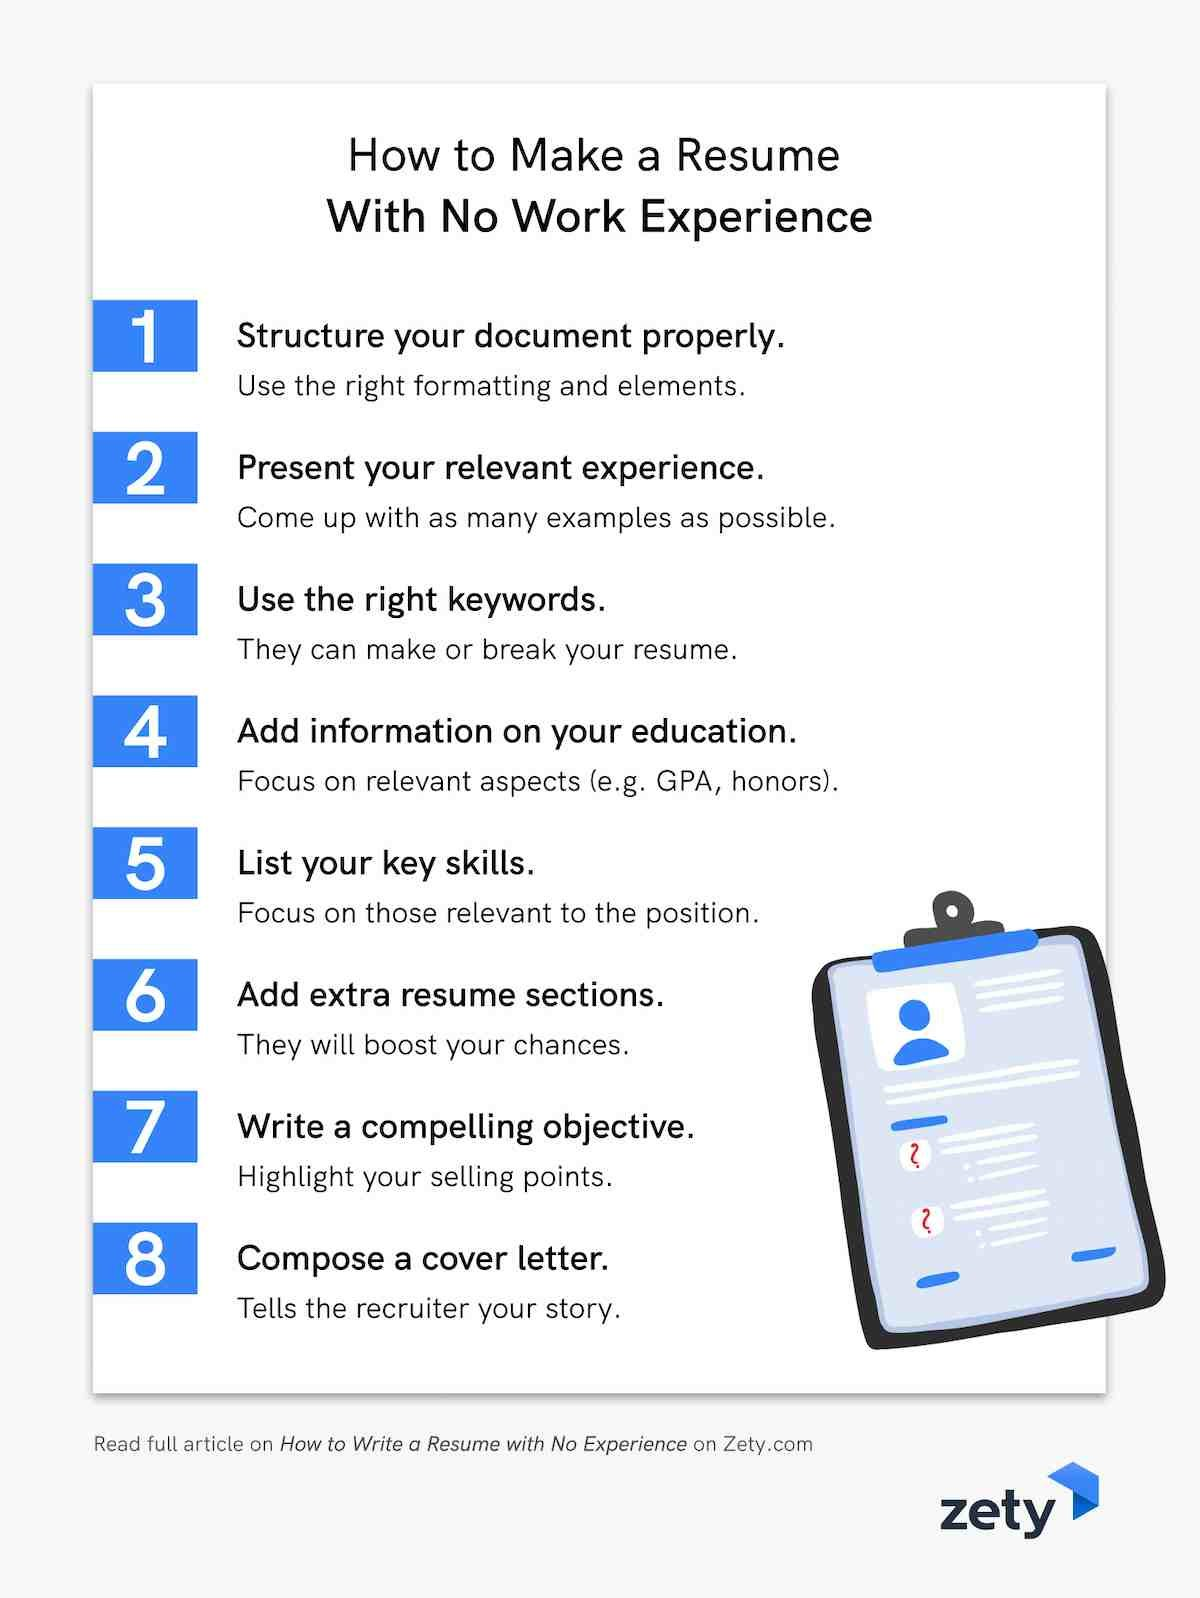 How to Make a Resume With No Work Experience in 8 steps